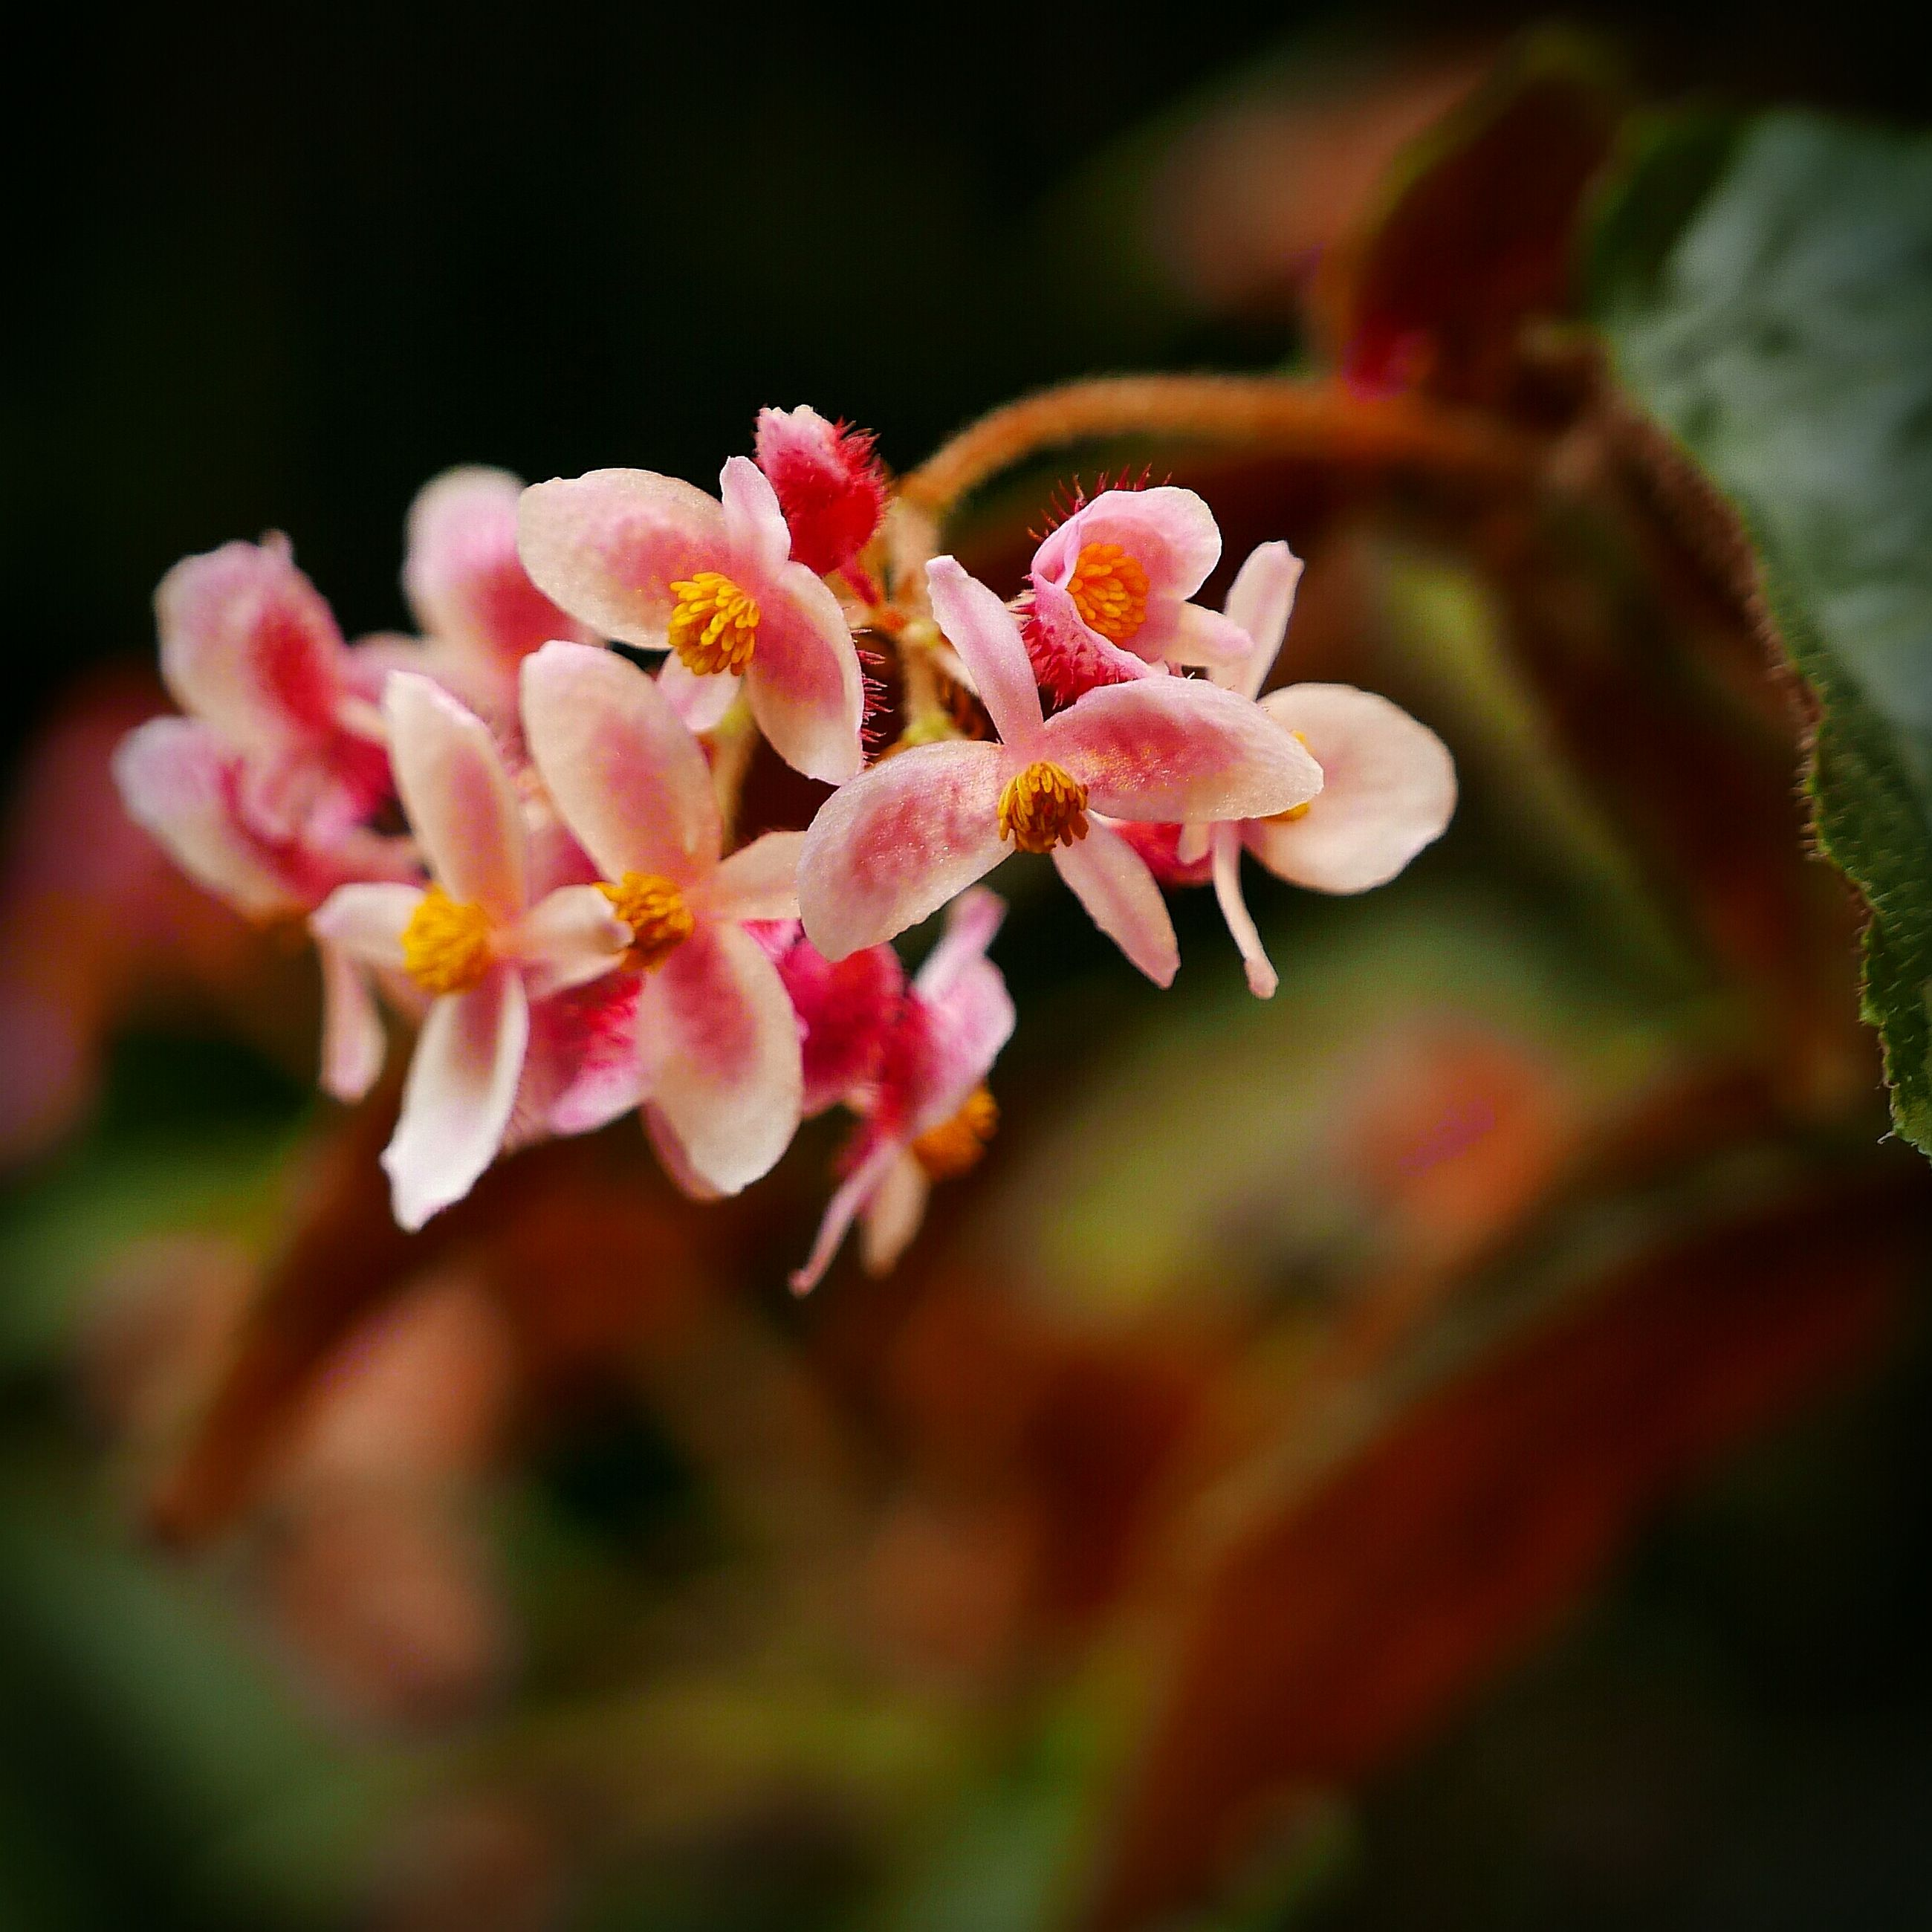 flower, beauty in nature, fragility, petal, nature, pink color, growth, plant, selective focus, close-up, flower head, no people, outdoors, freshness, day, blooming, tree